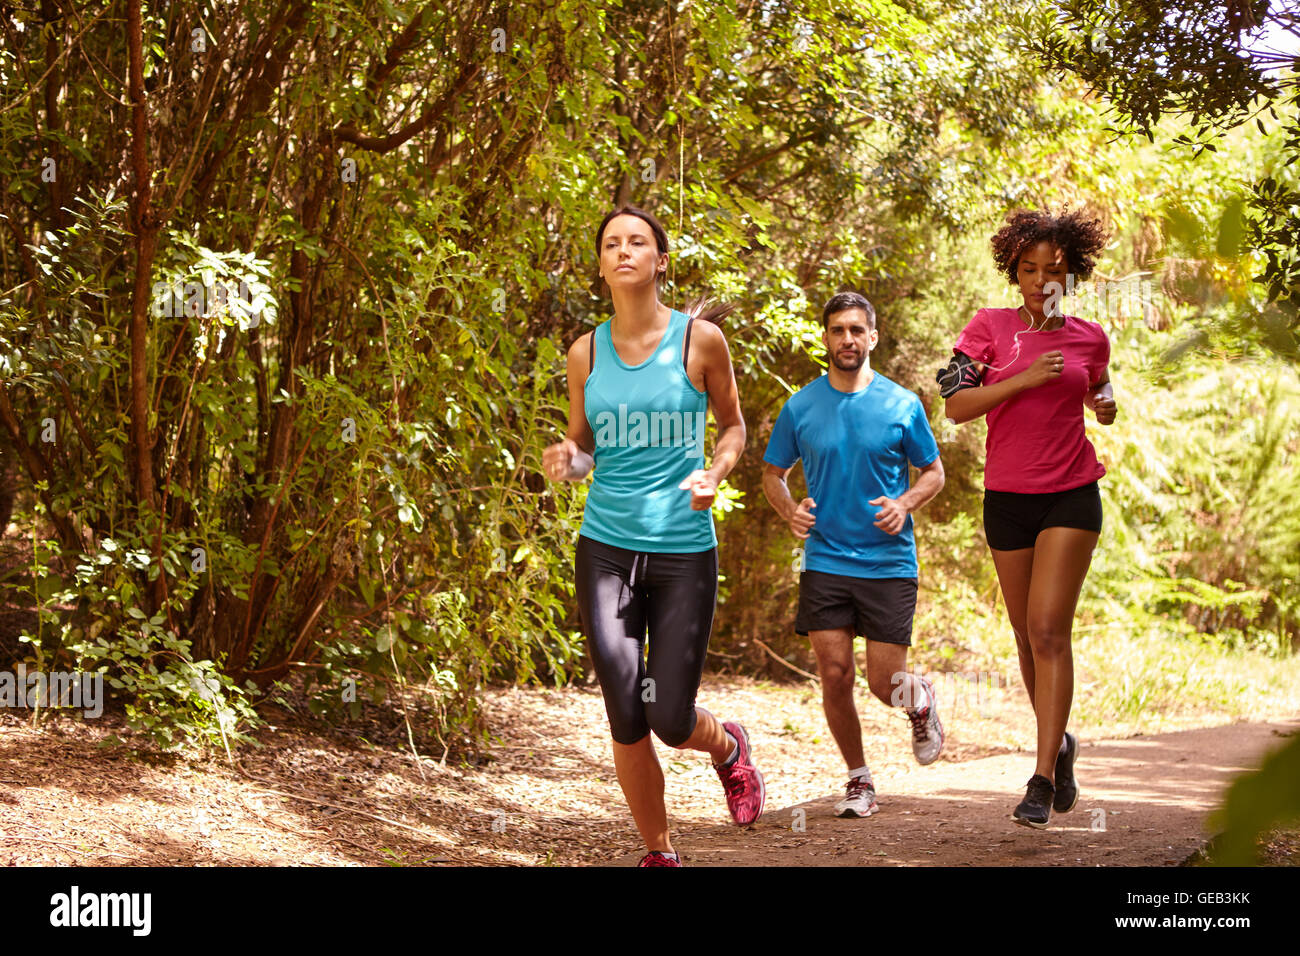 4688ed05ae35 A young guy and two girls jogging on a gravel running trail with trees  behind them while wearing t-shirts and black pants